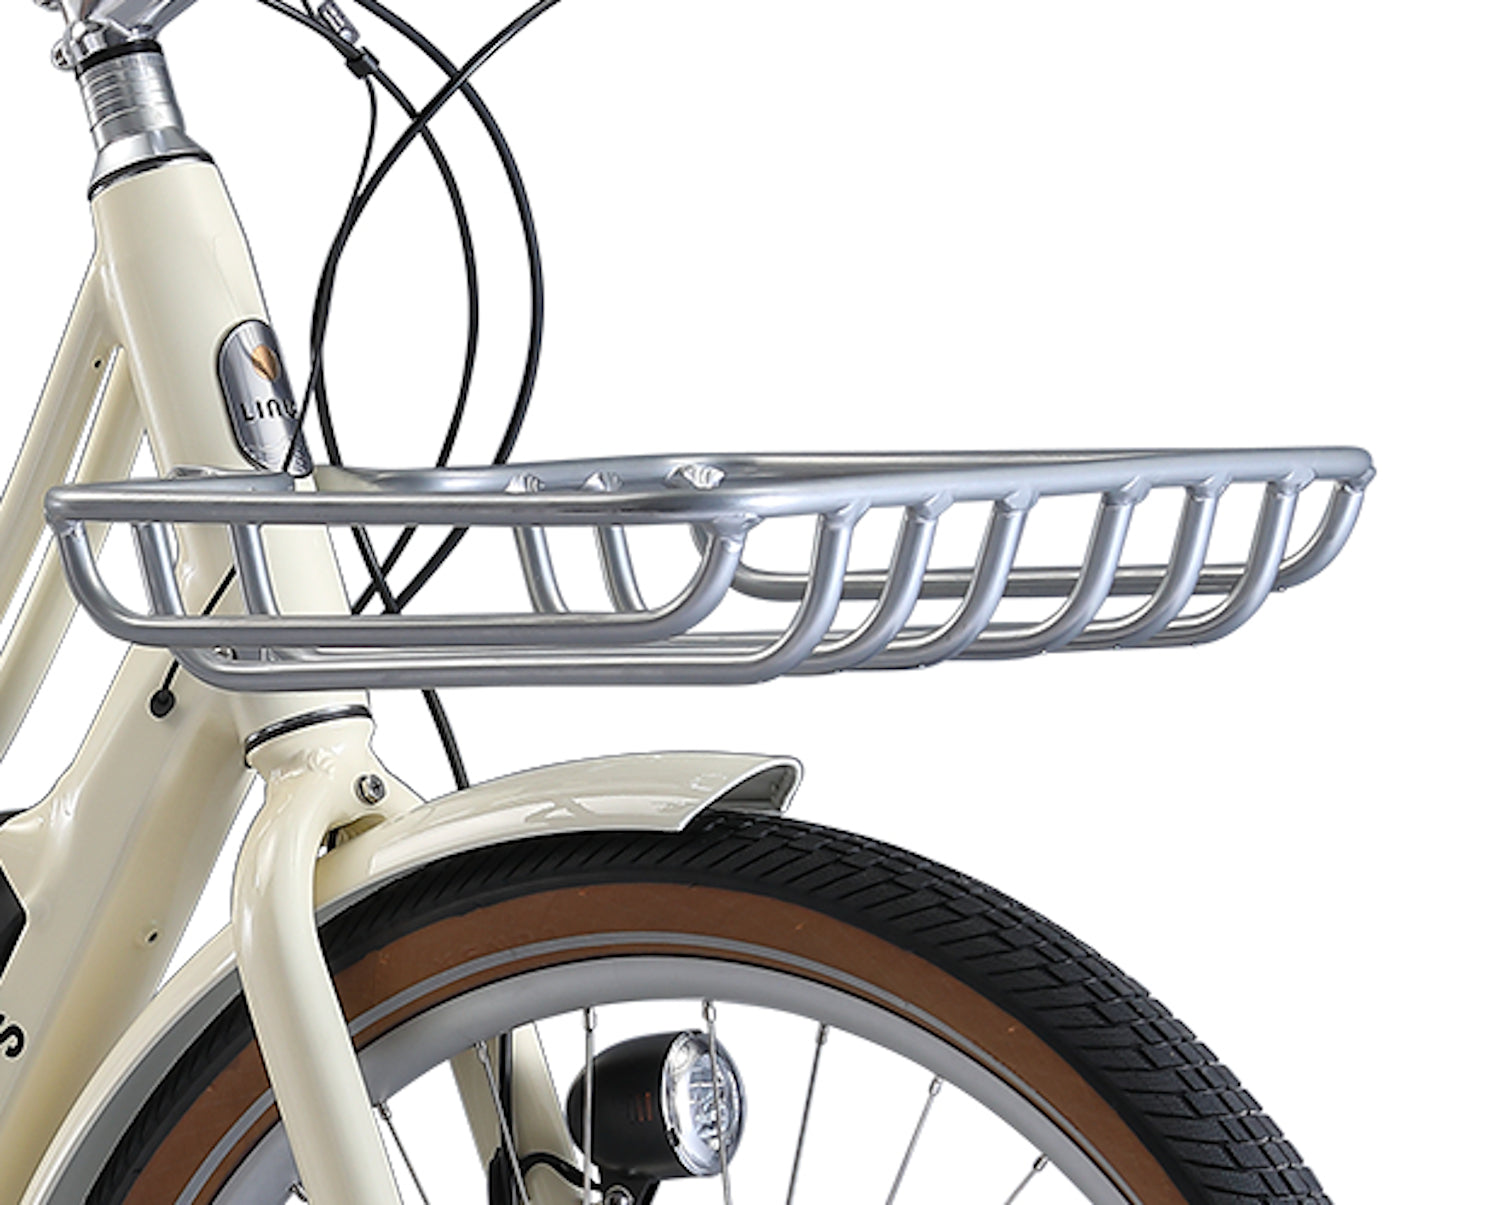 In The Details - Front Rack